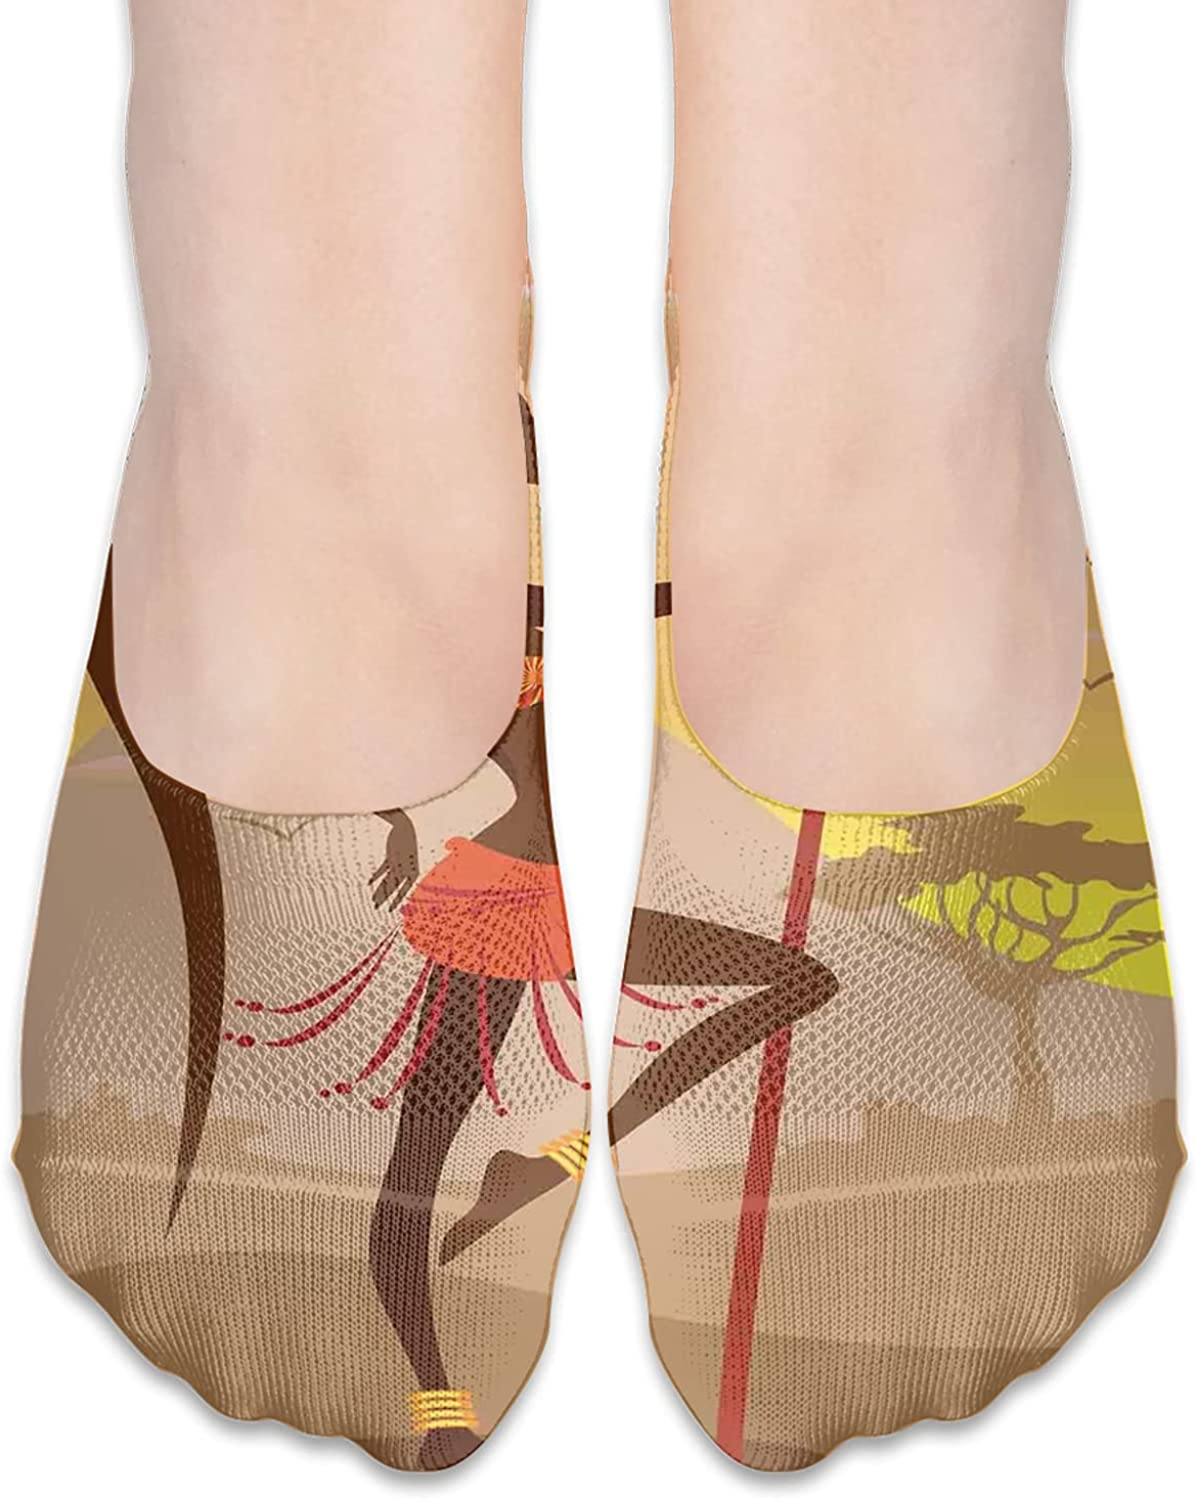 Polyester Cushioned Athletic Ankle Socks Savannah Lady Like Amazon Girl Standing For Hunt Safari Style Retro Folk PrintAnkle Compression Sock for Men and Women Low Cut Compression Running Sock